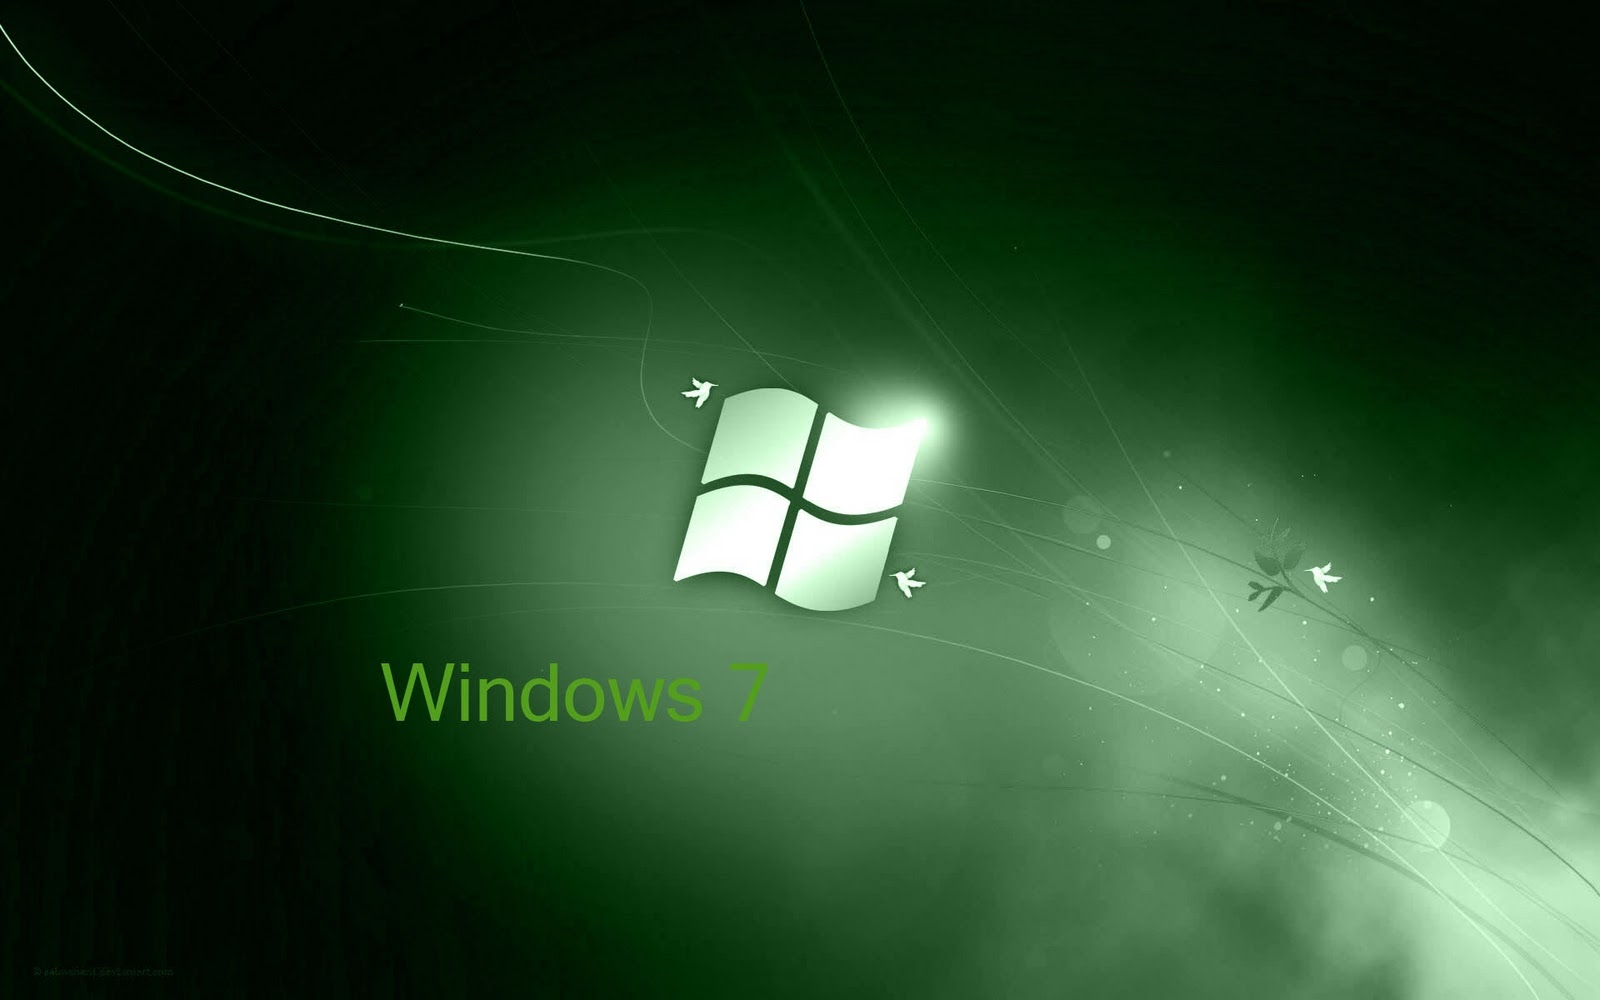 window 7 wallpaper hd ultimate | name wallpaper hd